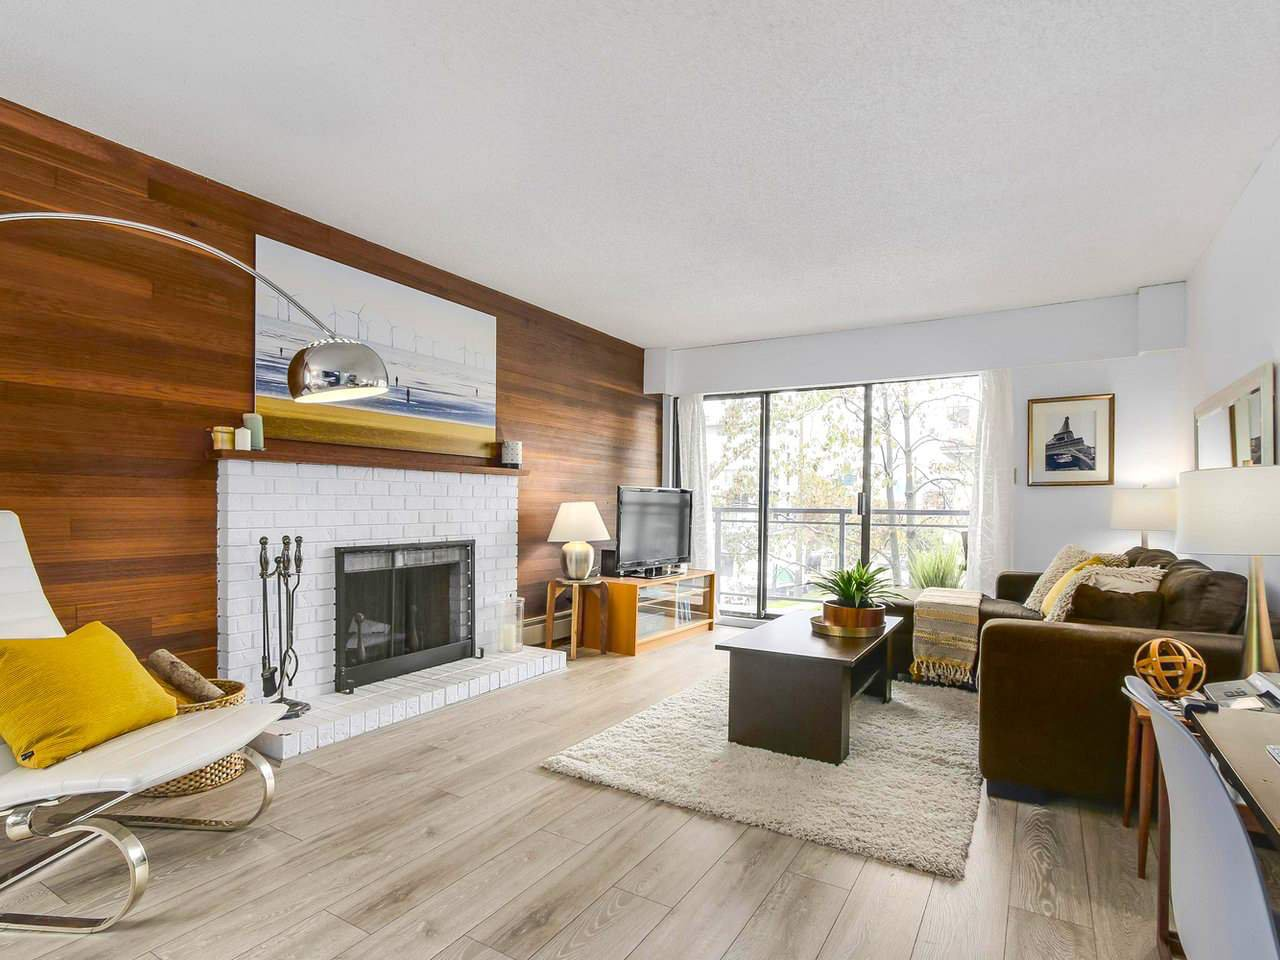 """Main Photo: 211 319 E 7TH Avenue in Vancouver: Mount Pleasant VE Condo for sale in """"SCOTIA PLACE"""" (Vancouver East)  : MLS®# R2216536"""